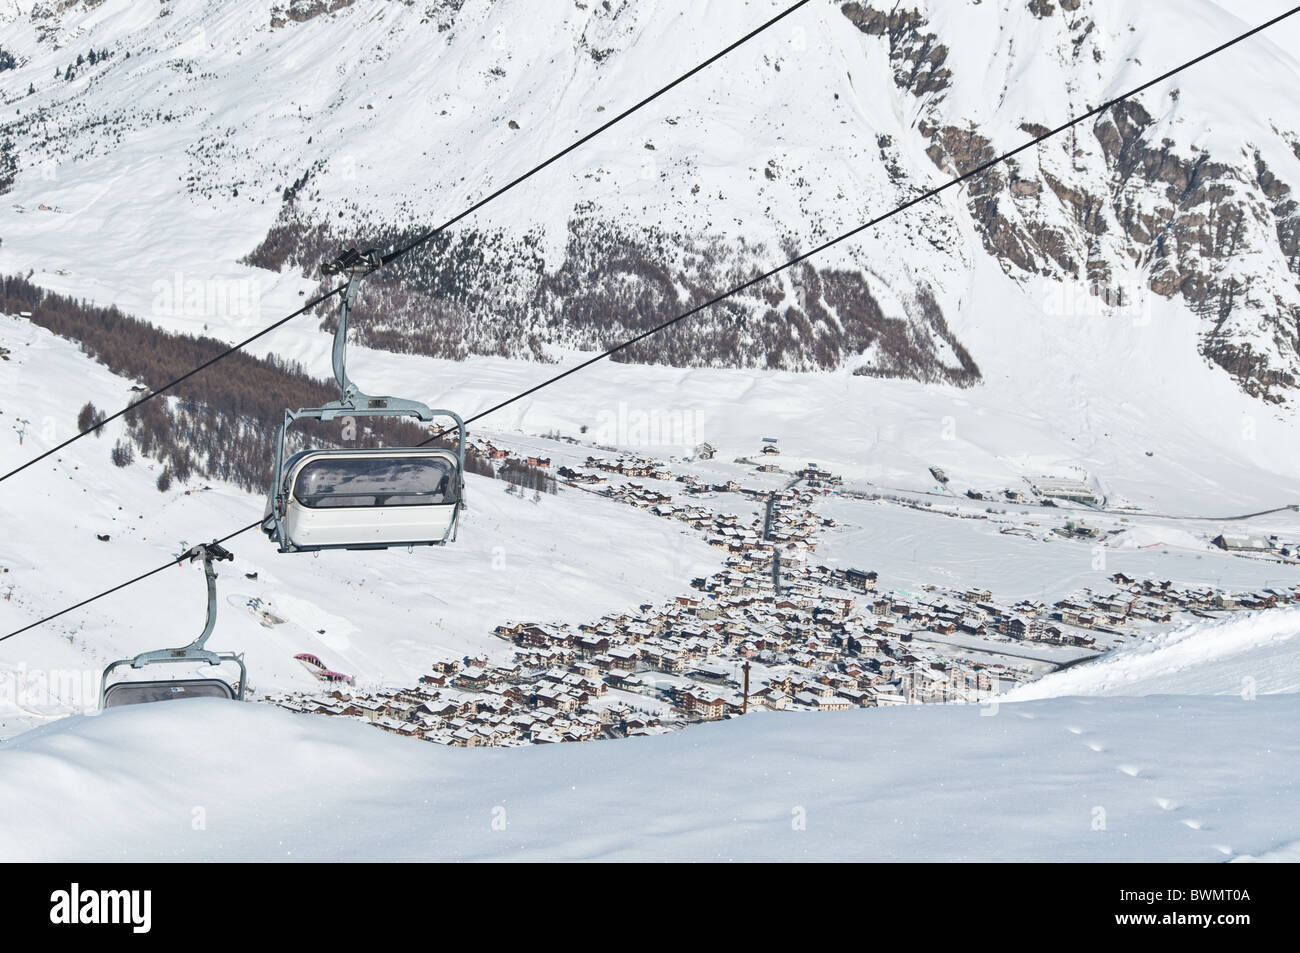 Chairlifts running above a mountain village - shot in Livigno, Italian Alps Stock Photo